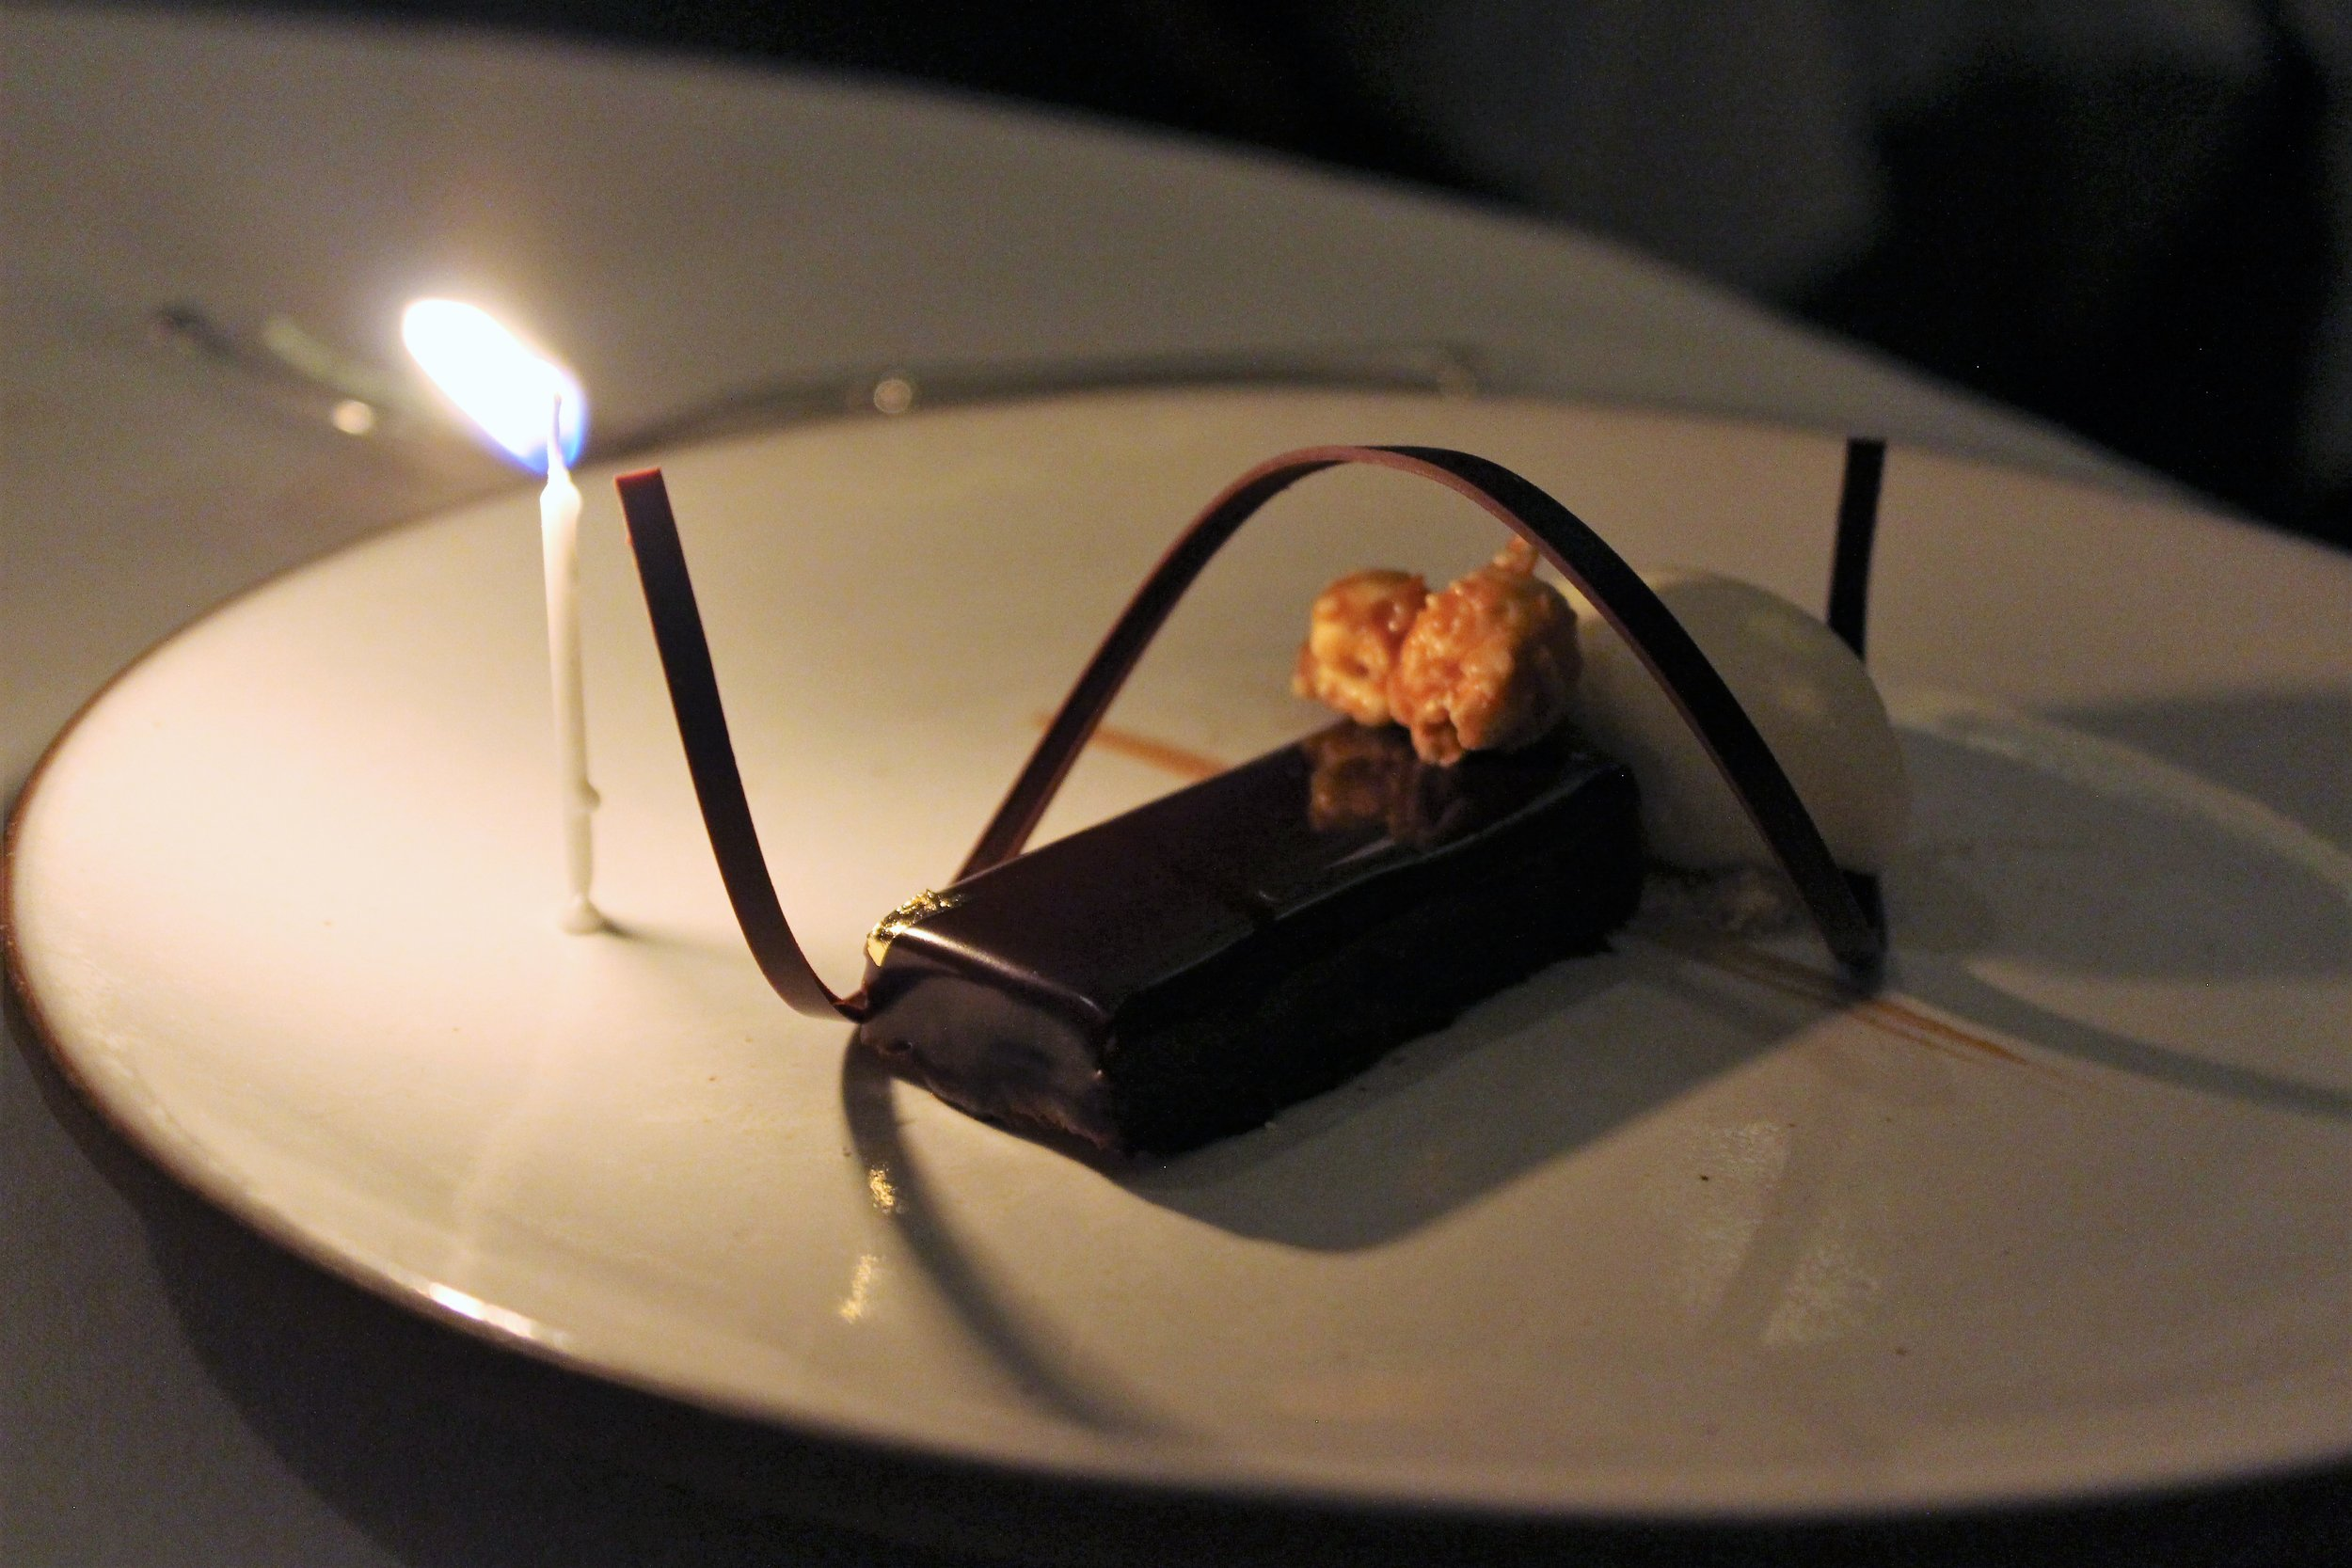 2008 Chocolate Palette with Peanut Butter and Popcorn Ice Cream at EMP in New York City